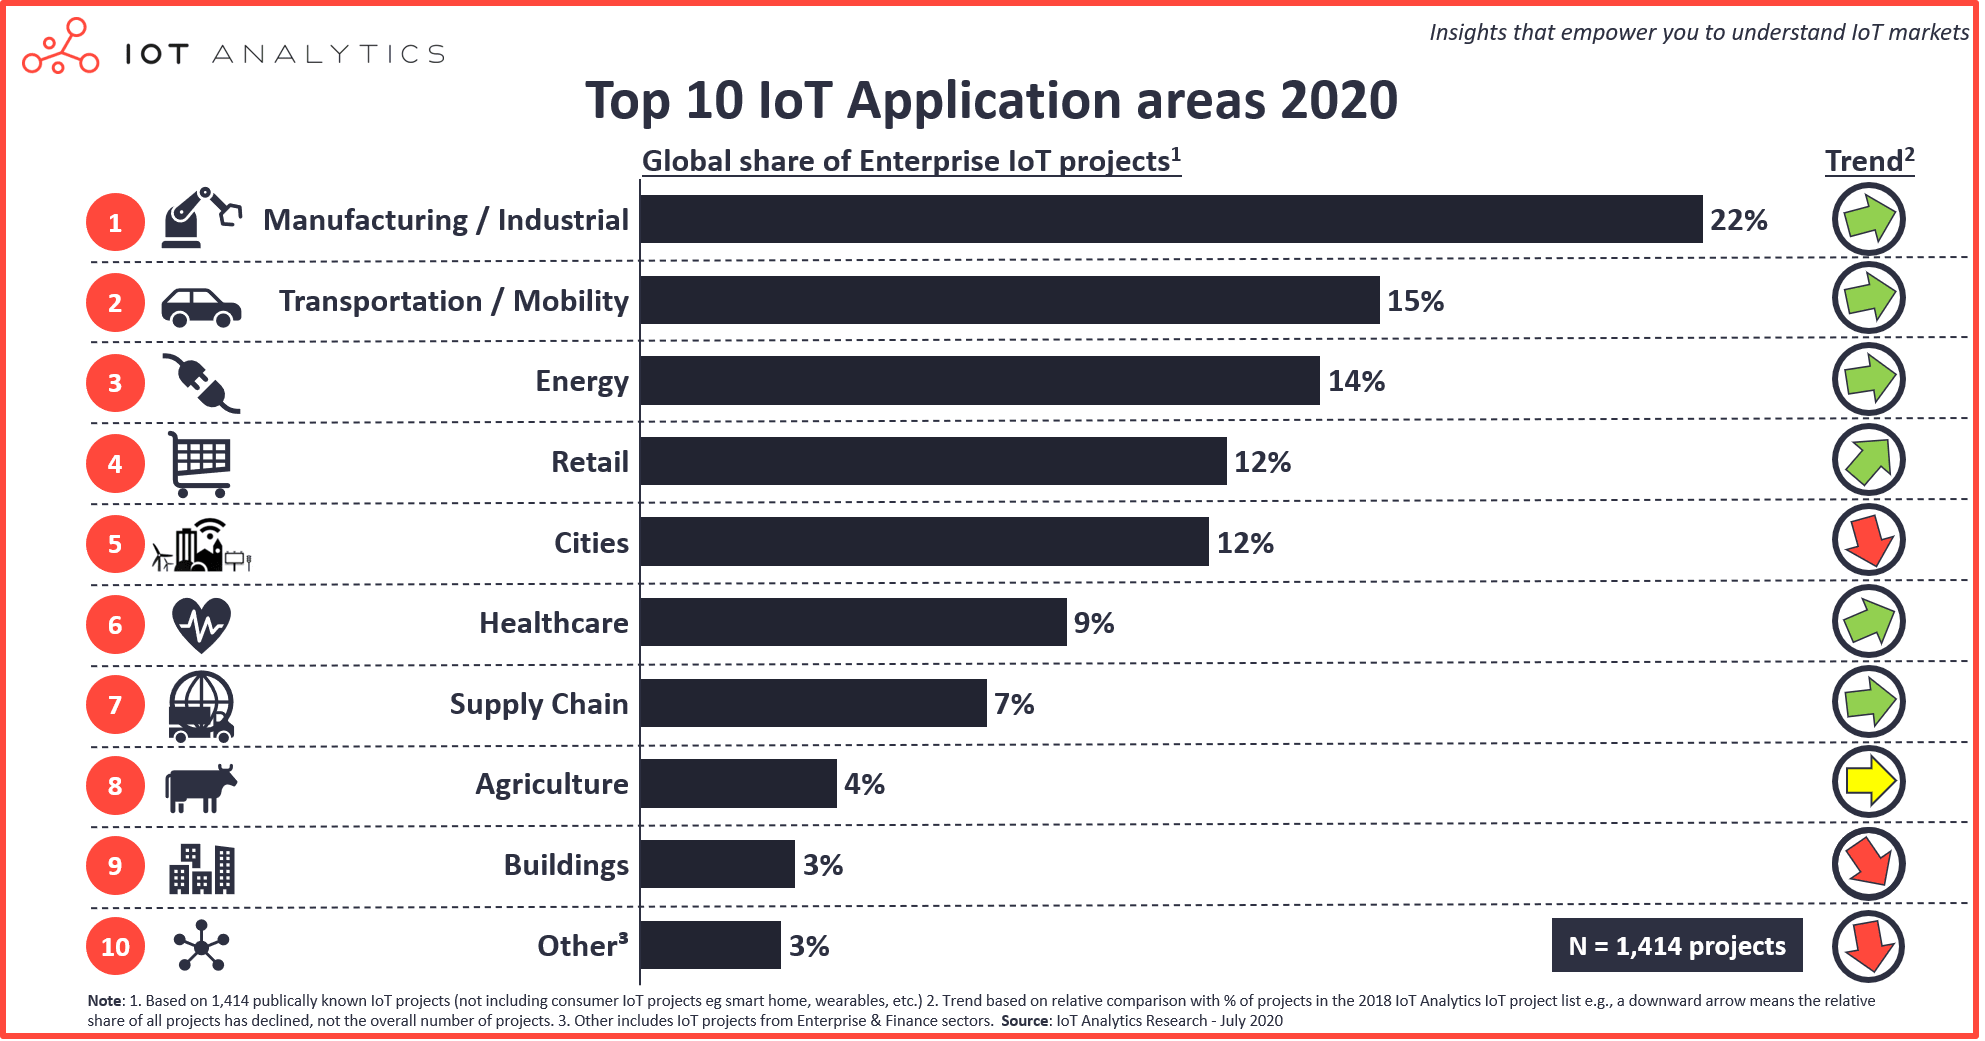 Top 10 IoT Applications in 2020